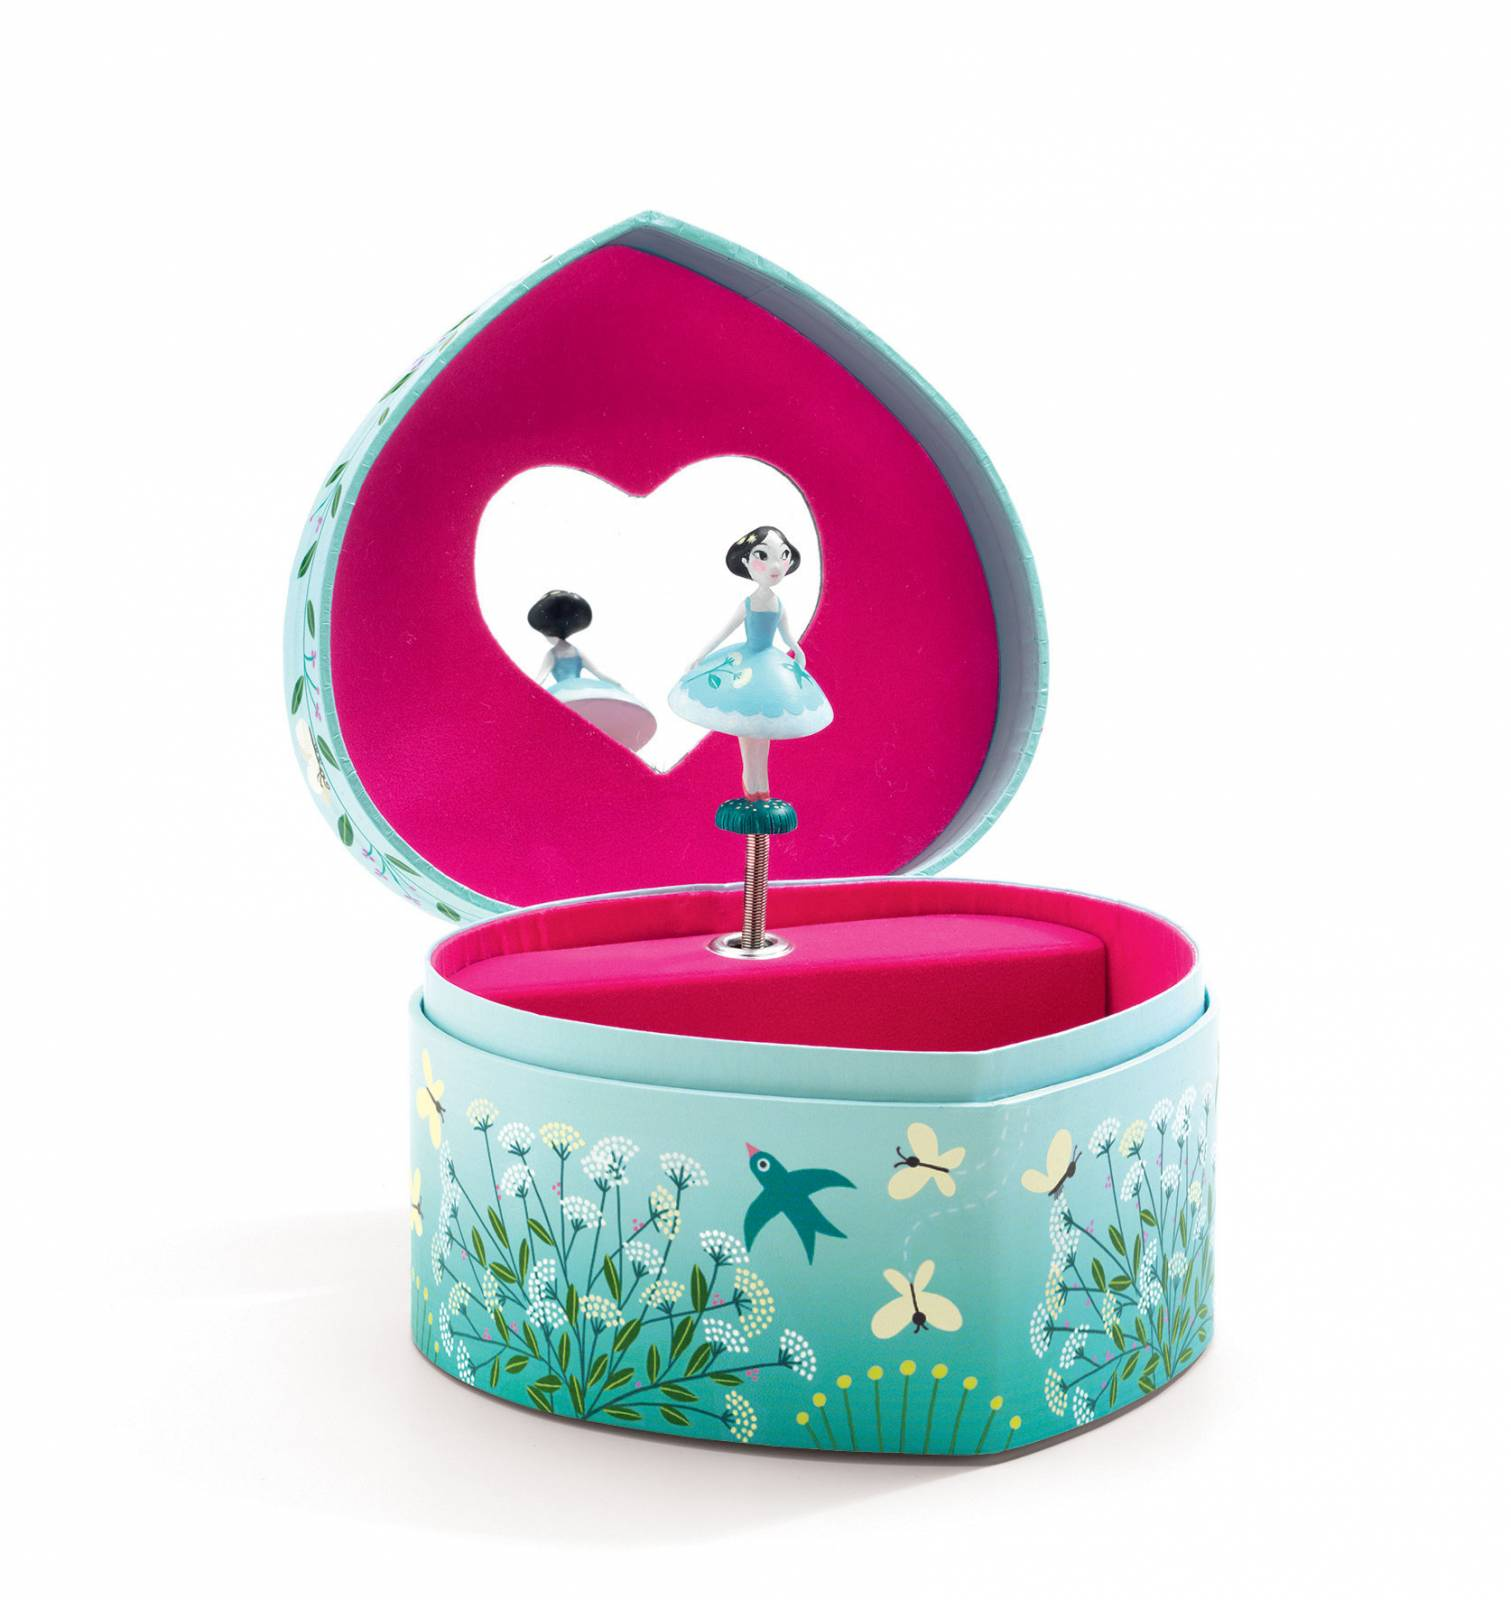 Budding Dancer Music Box By Djeco